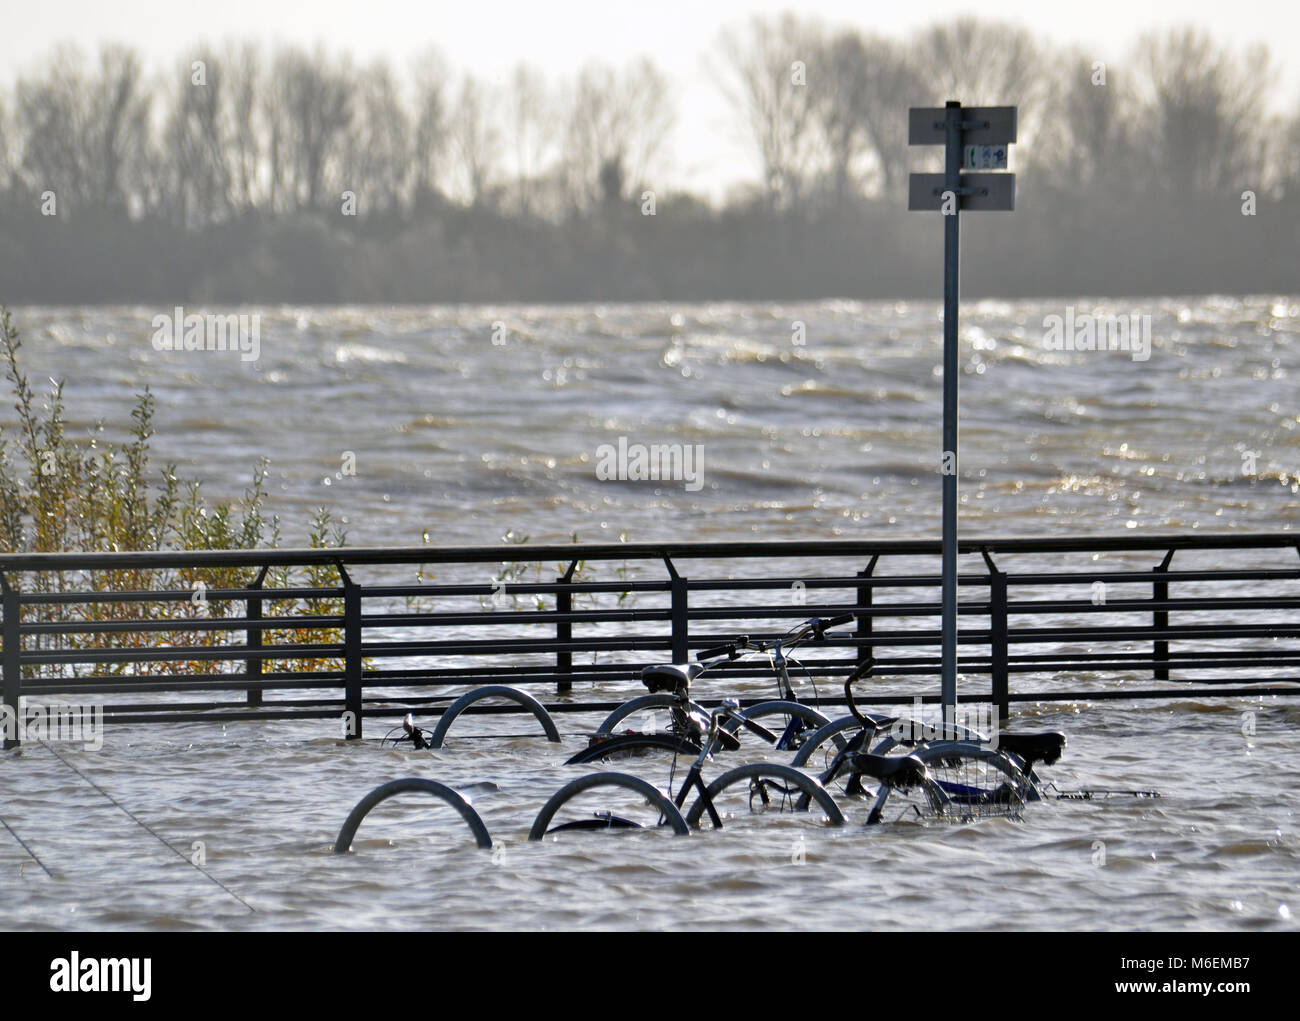 Submerged bikes on the banks of the river Elbe - Stock Image